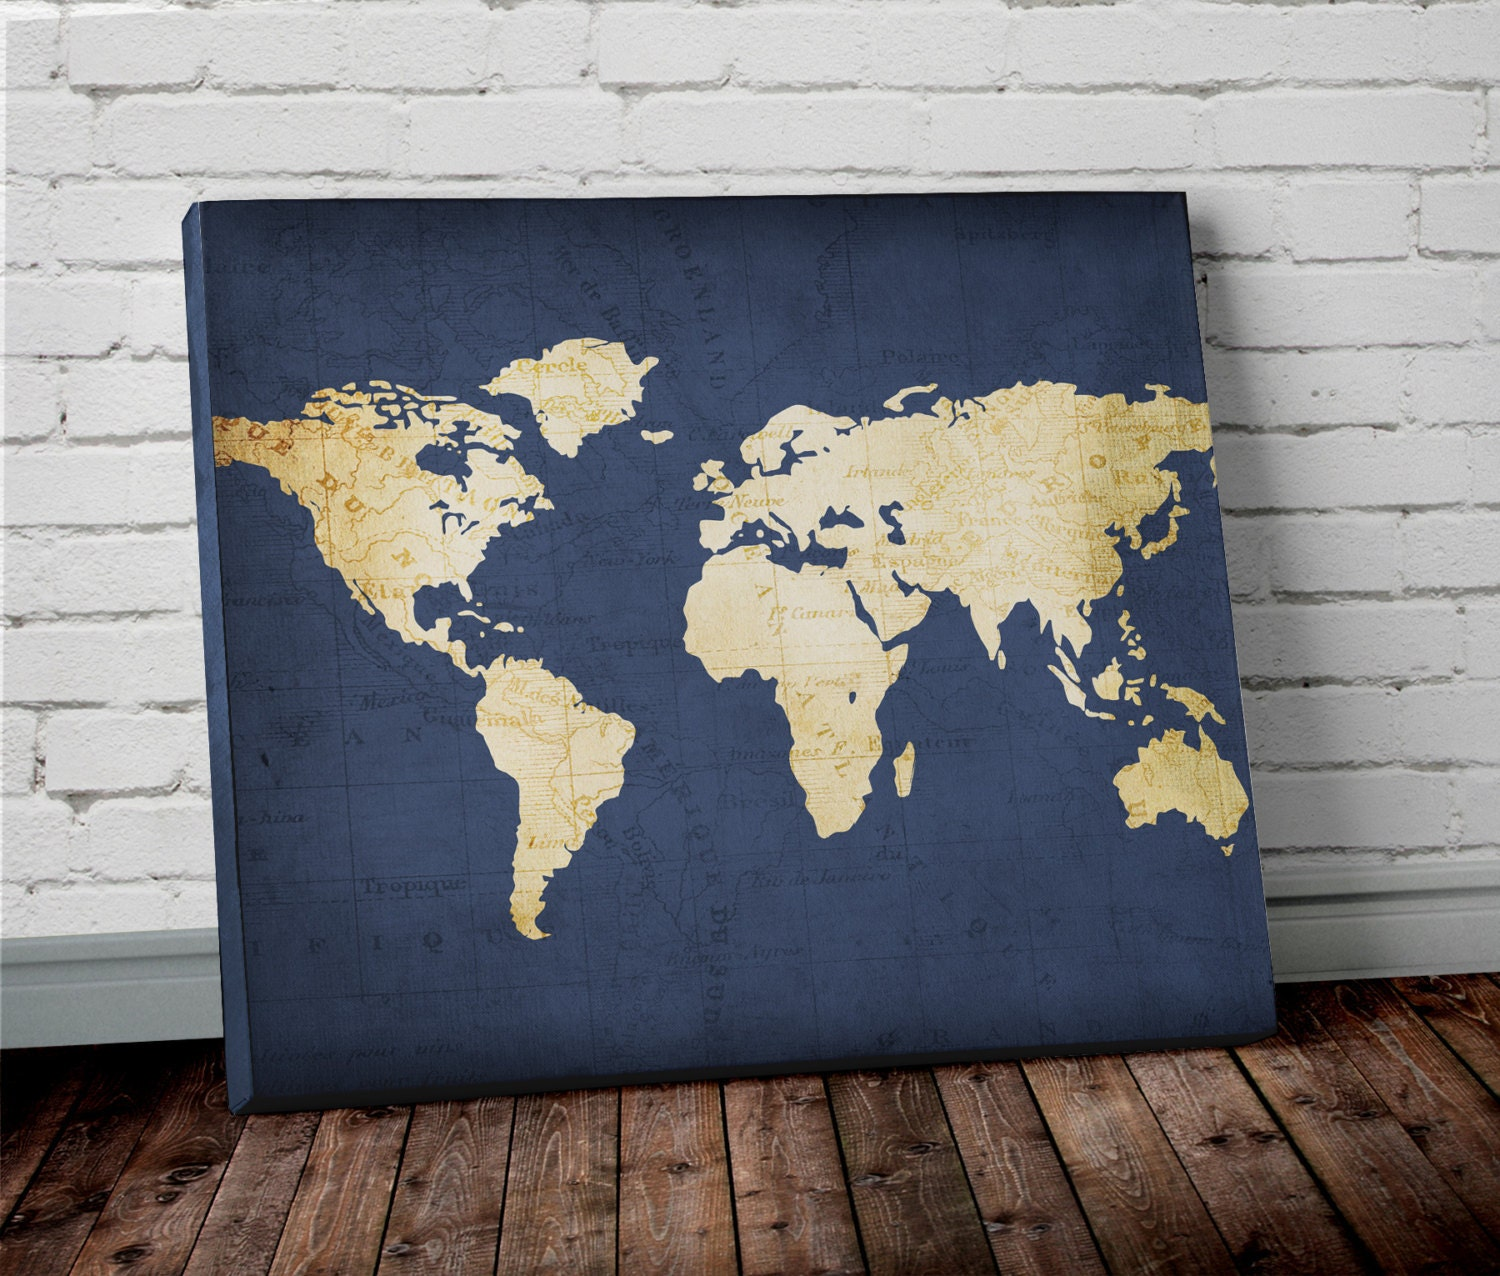 Navy WORLD MAP Wall ART Canvas World Map Print In Navy Blue - World map canvas